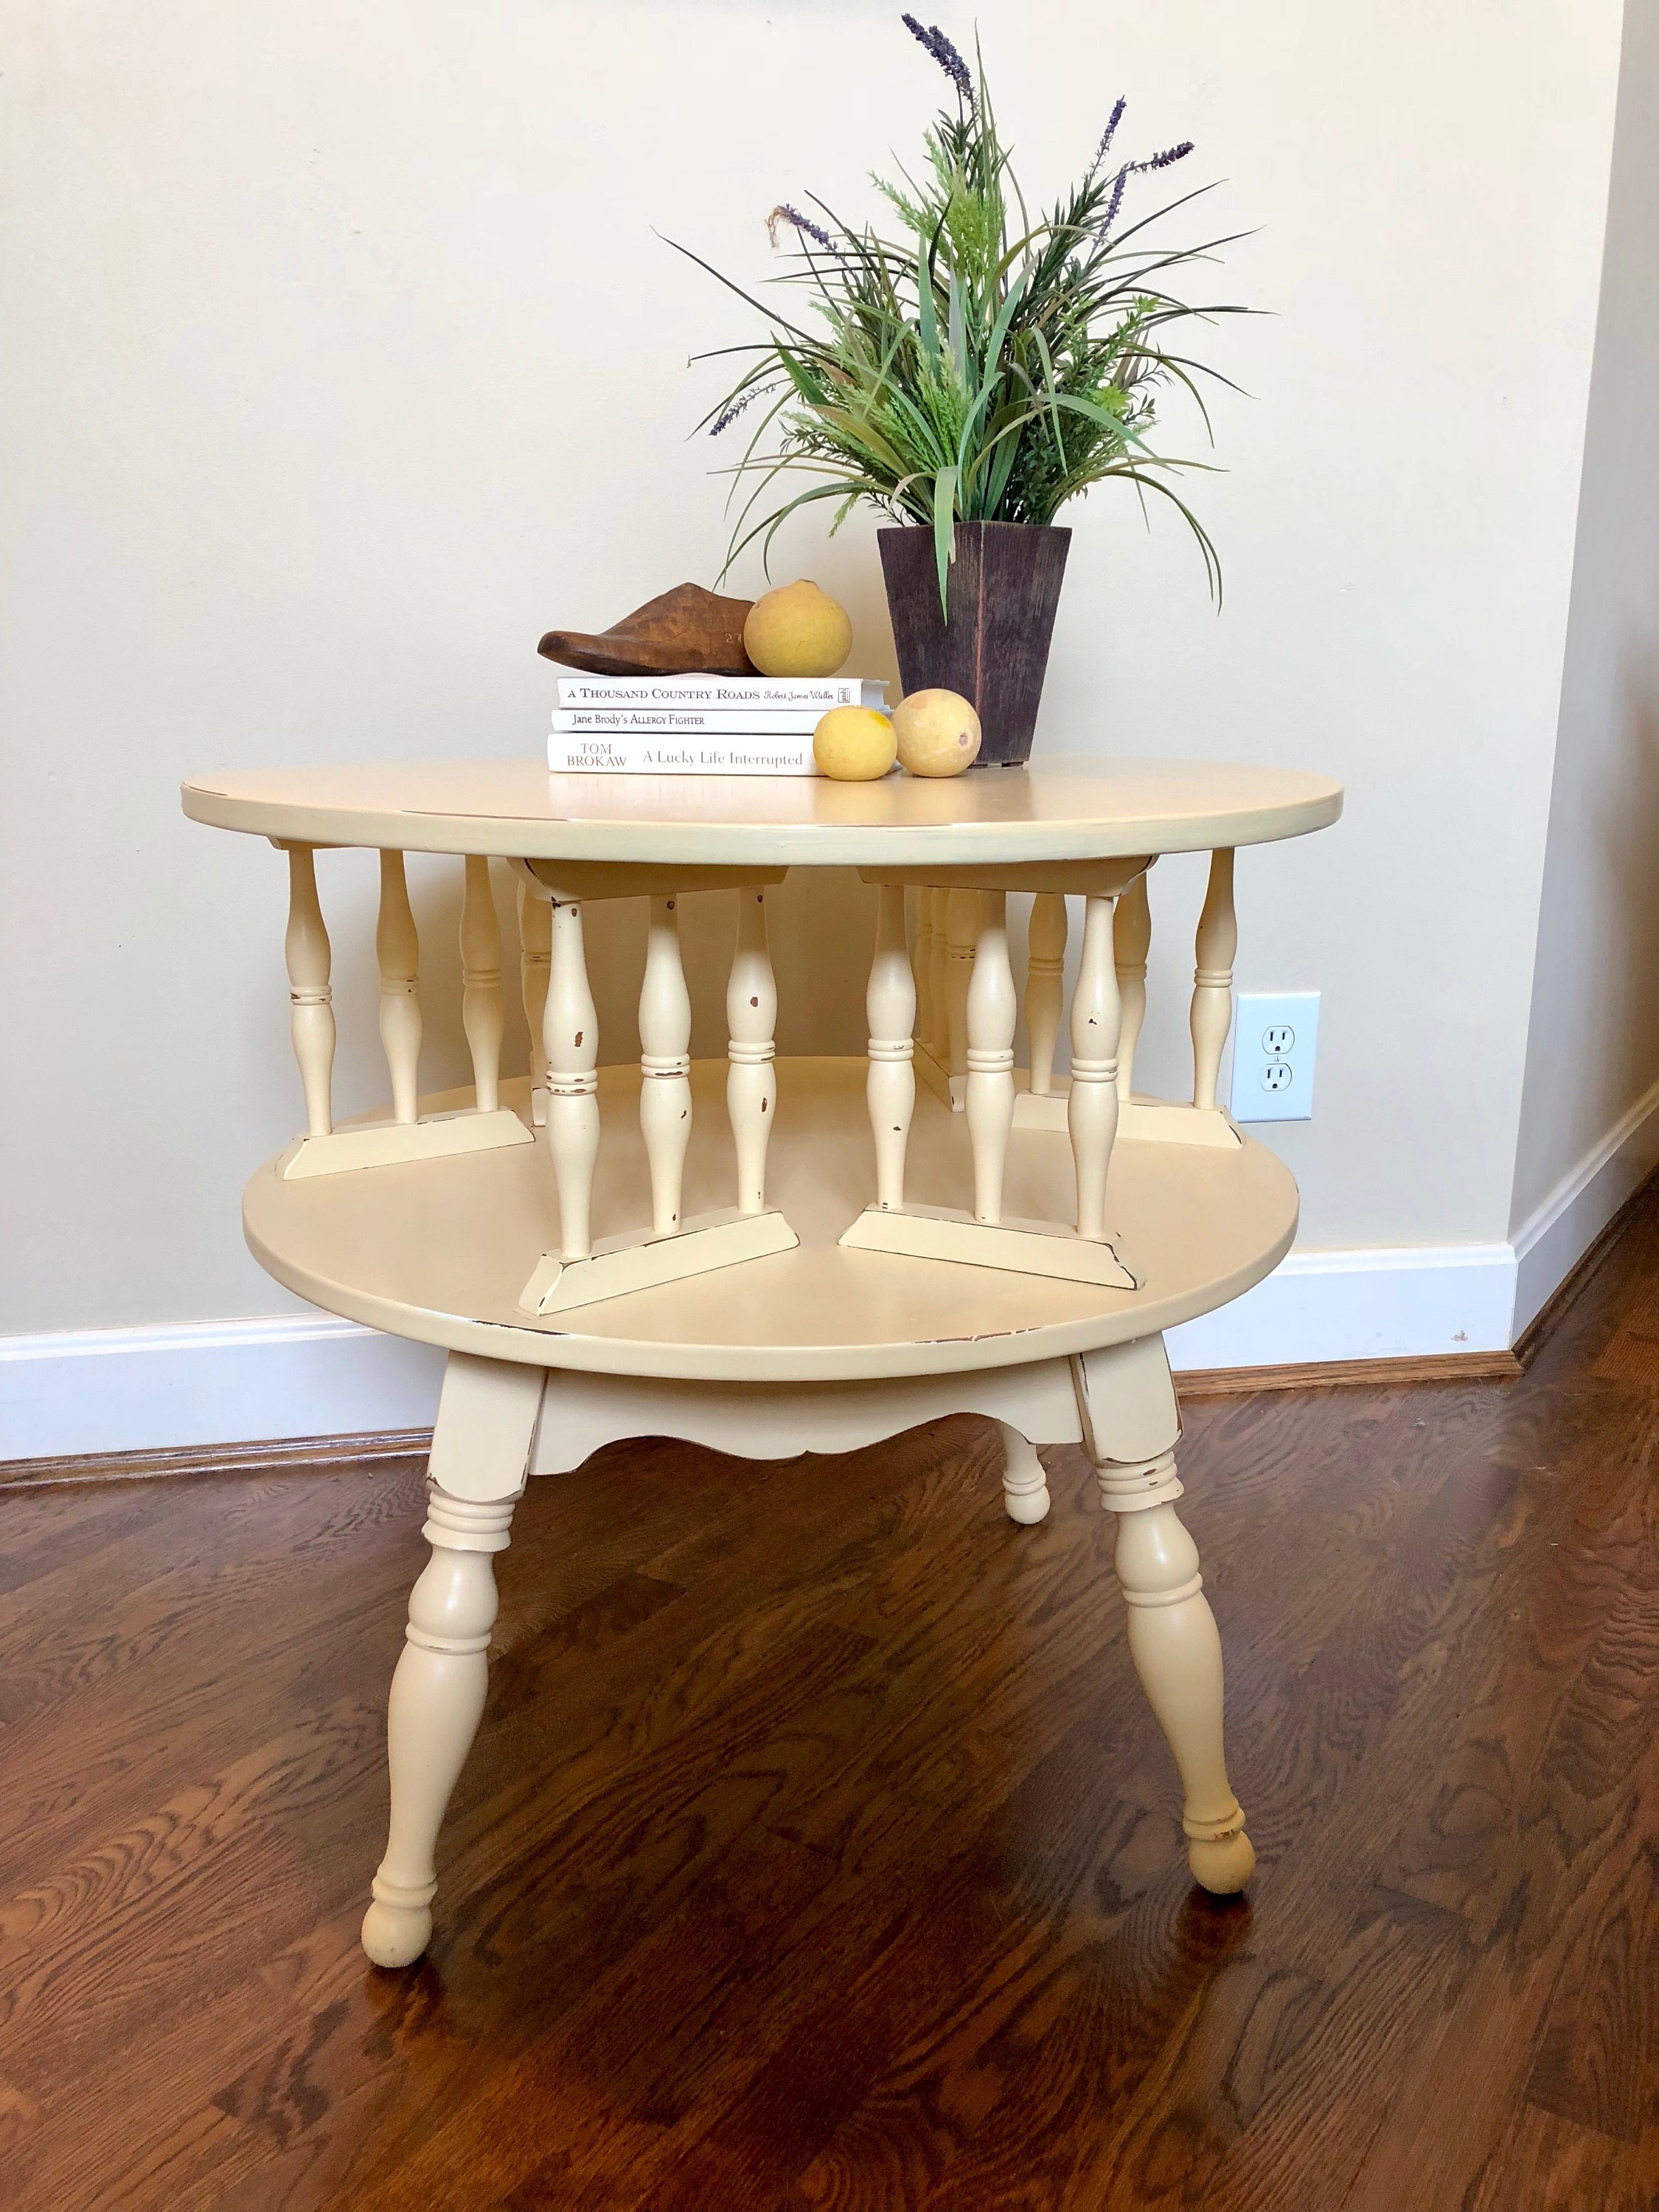 vintage side table accent painted bedside etsy fullxfull wood small end tables modern low coffee battery standard lamp homesense dining chairs house and home decorating french